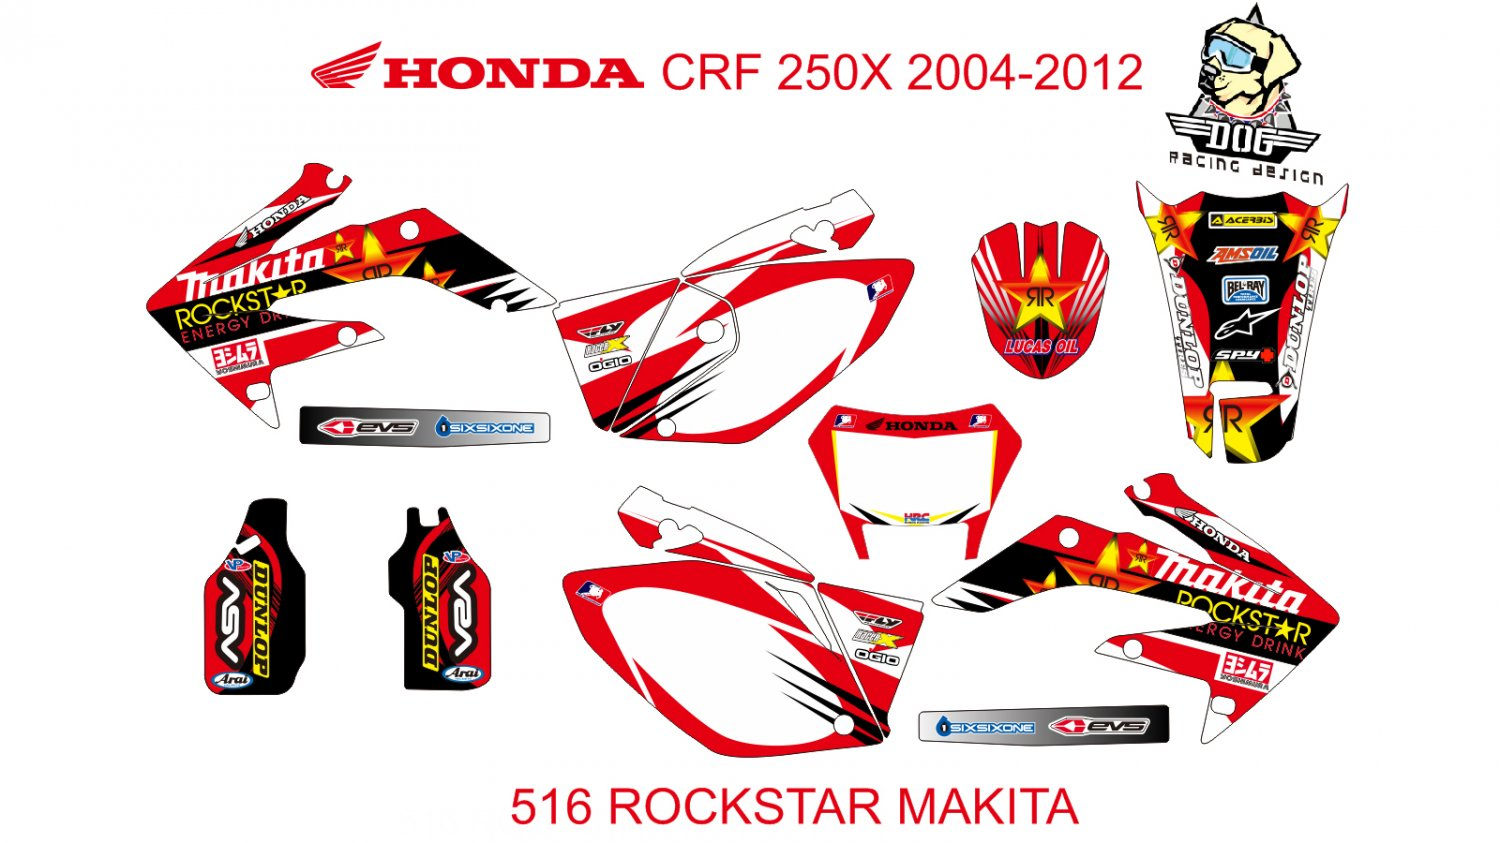 HONDA CRF 250X 2004-2012 GRAPHIC DECAL KIT CODE.516